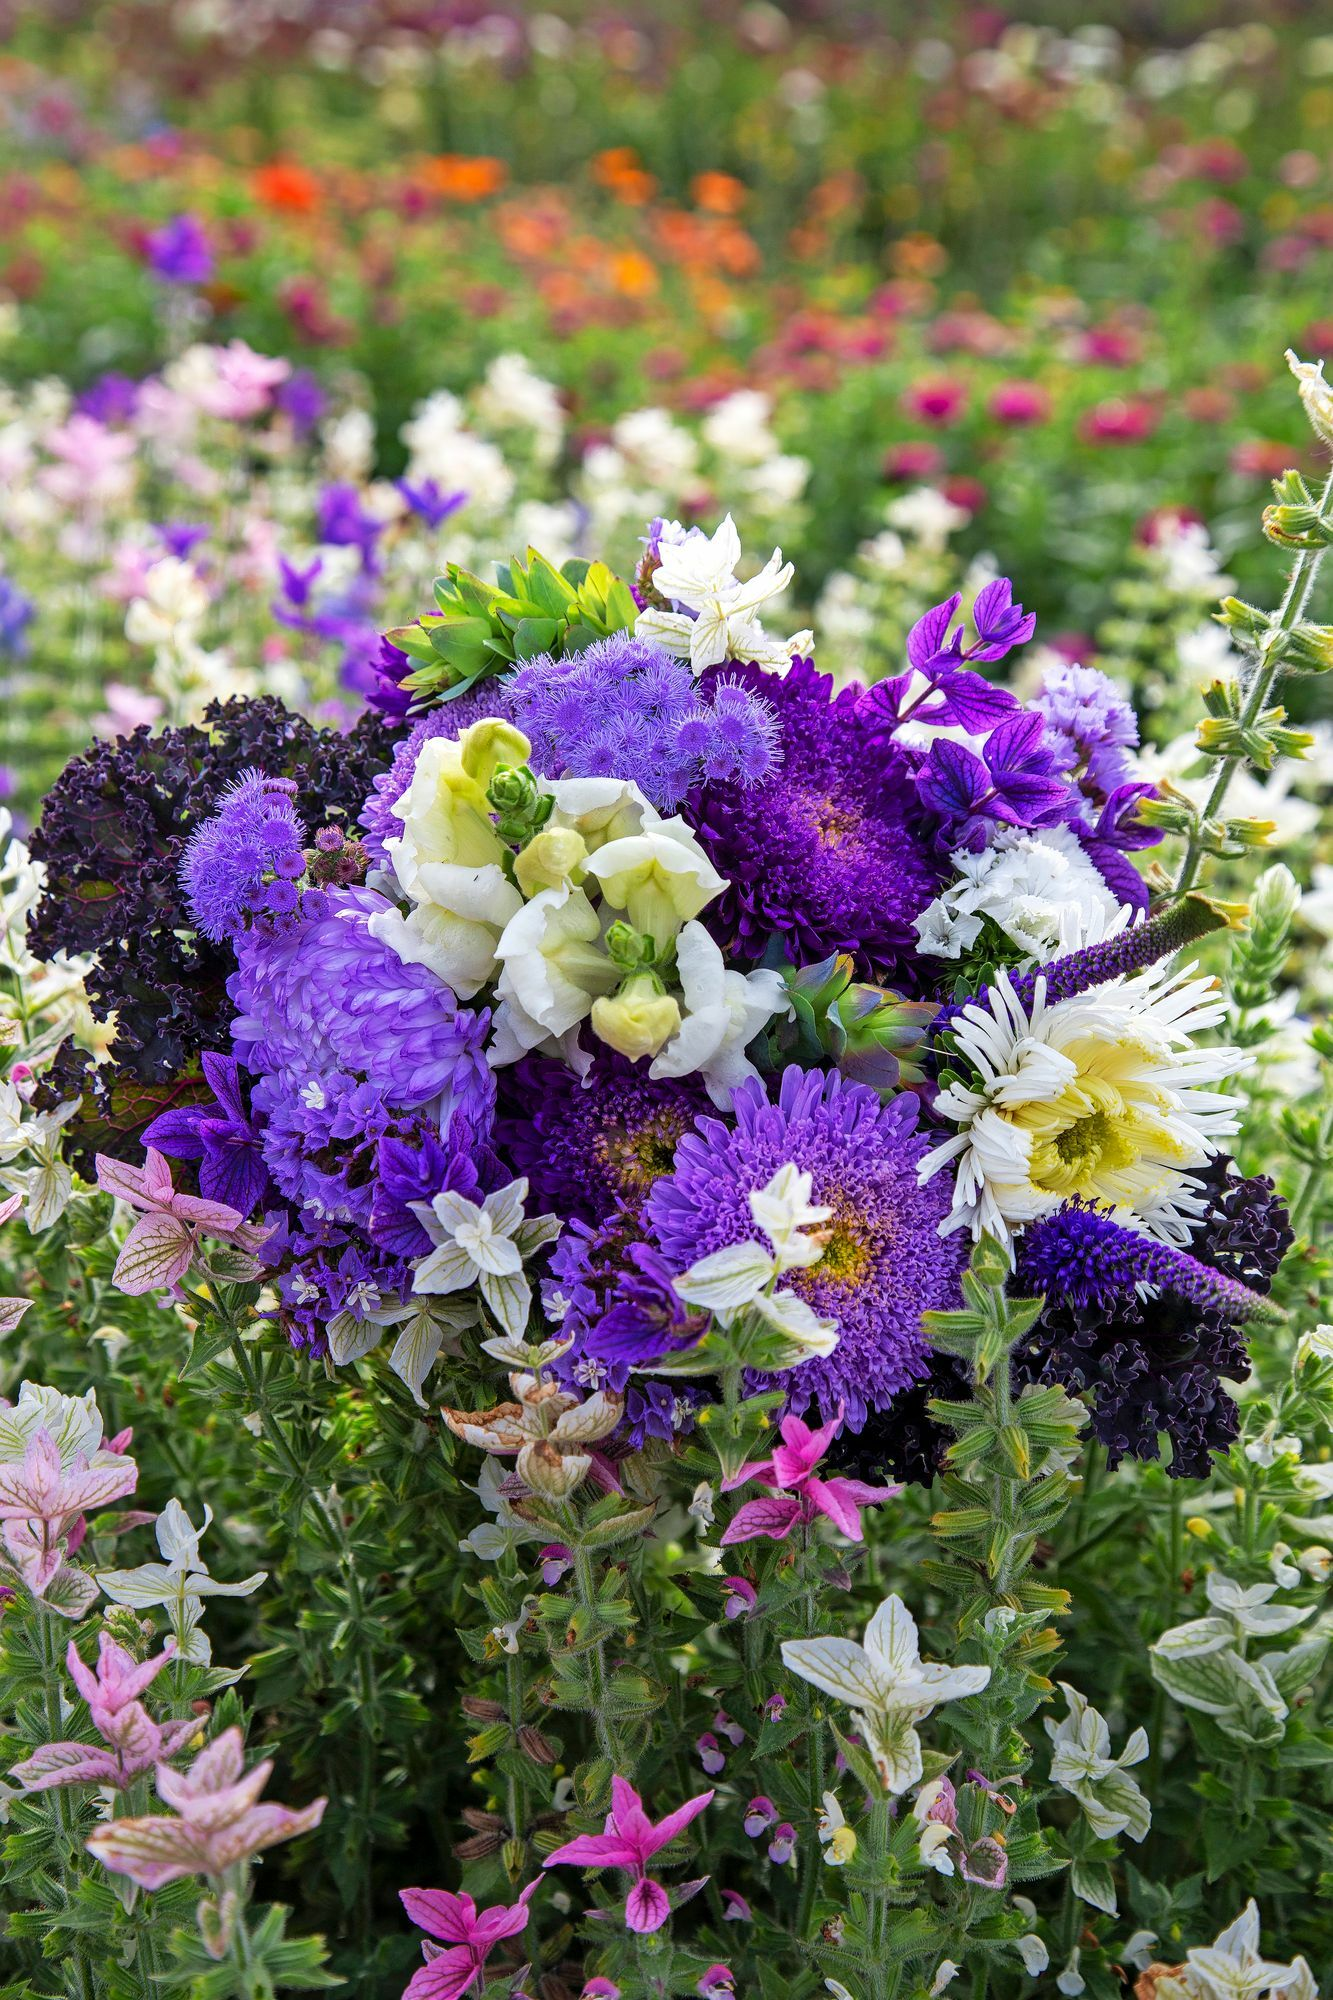 The blue-and-white bouquet features lion warblers, 'Timeless' blue stars, a variegated sage, a Matadoraster and a 'Blue Kiwi' big wax flower.